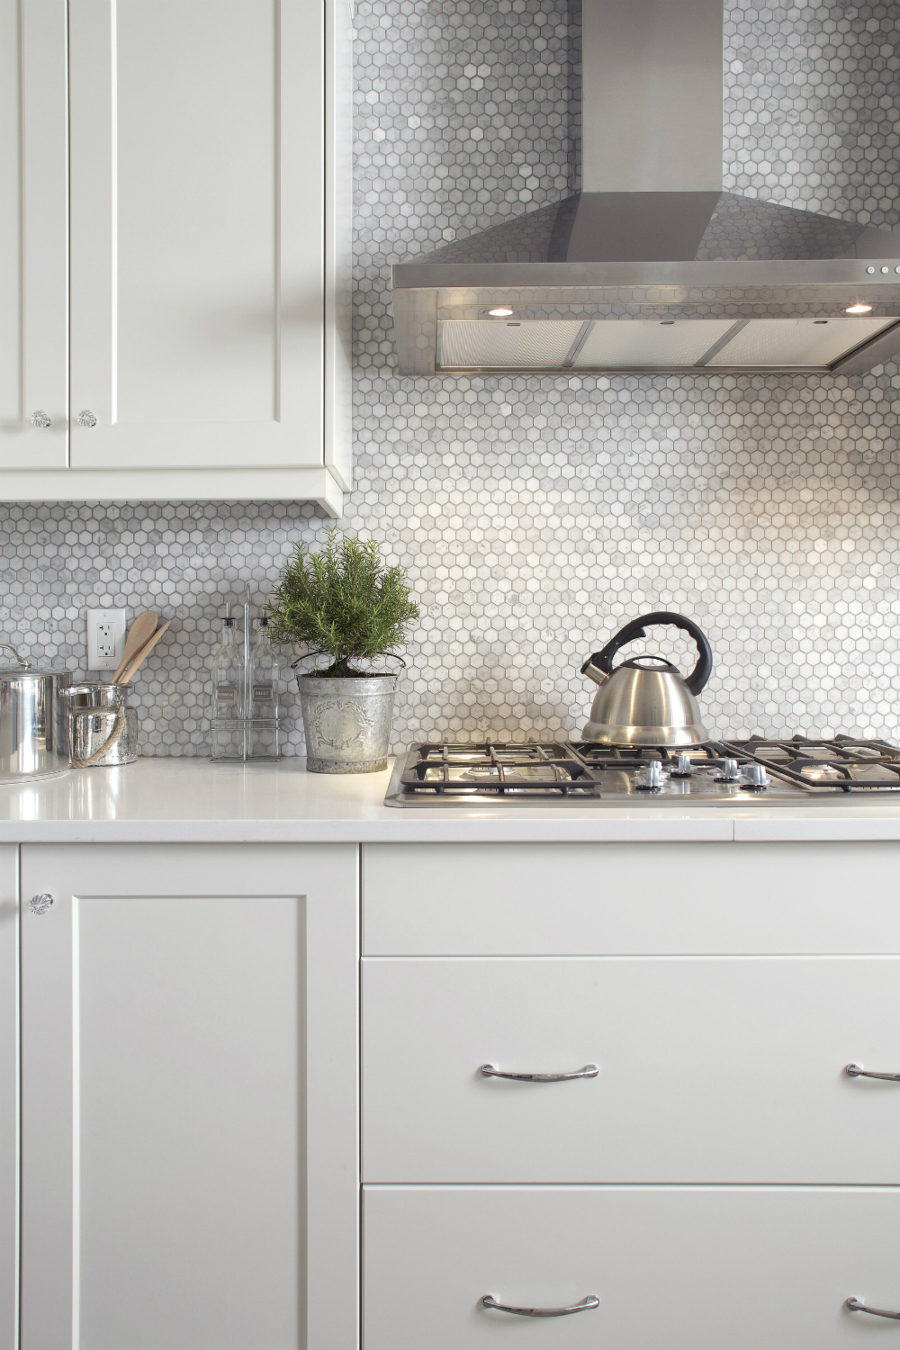 Tiny hexagon tile backsplash